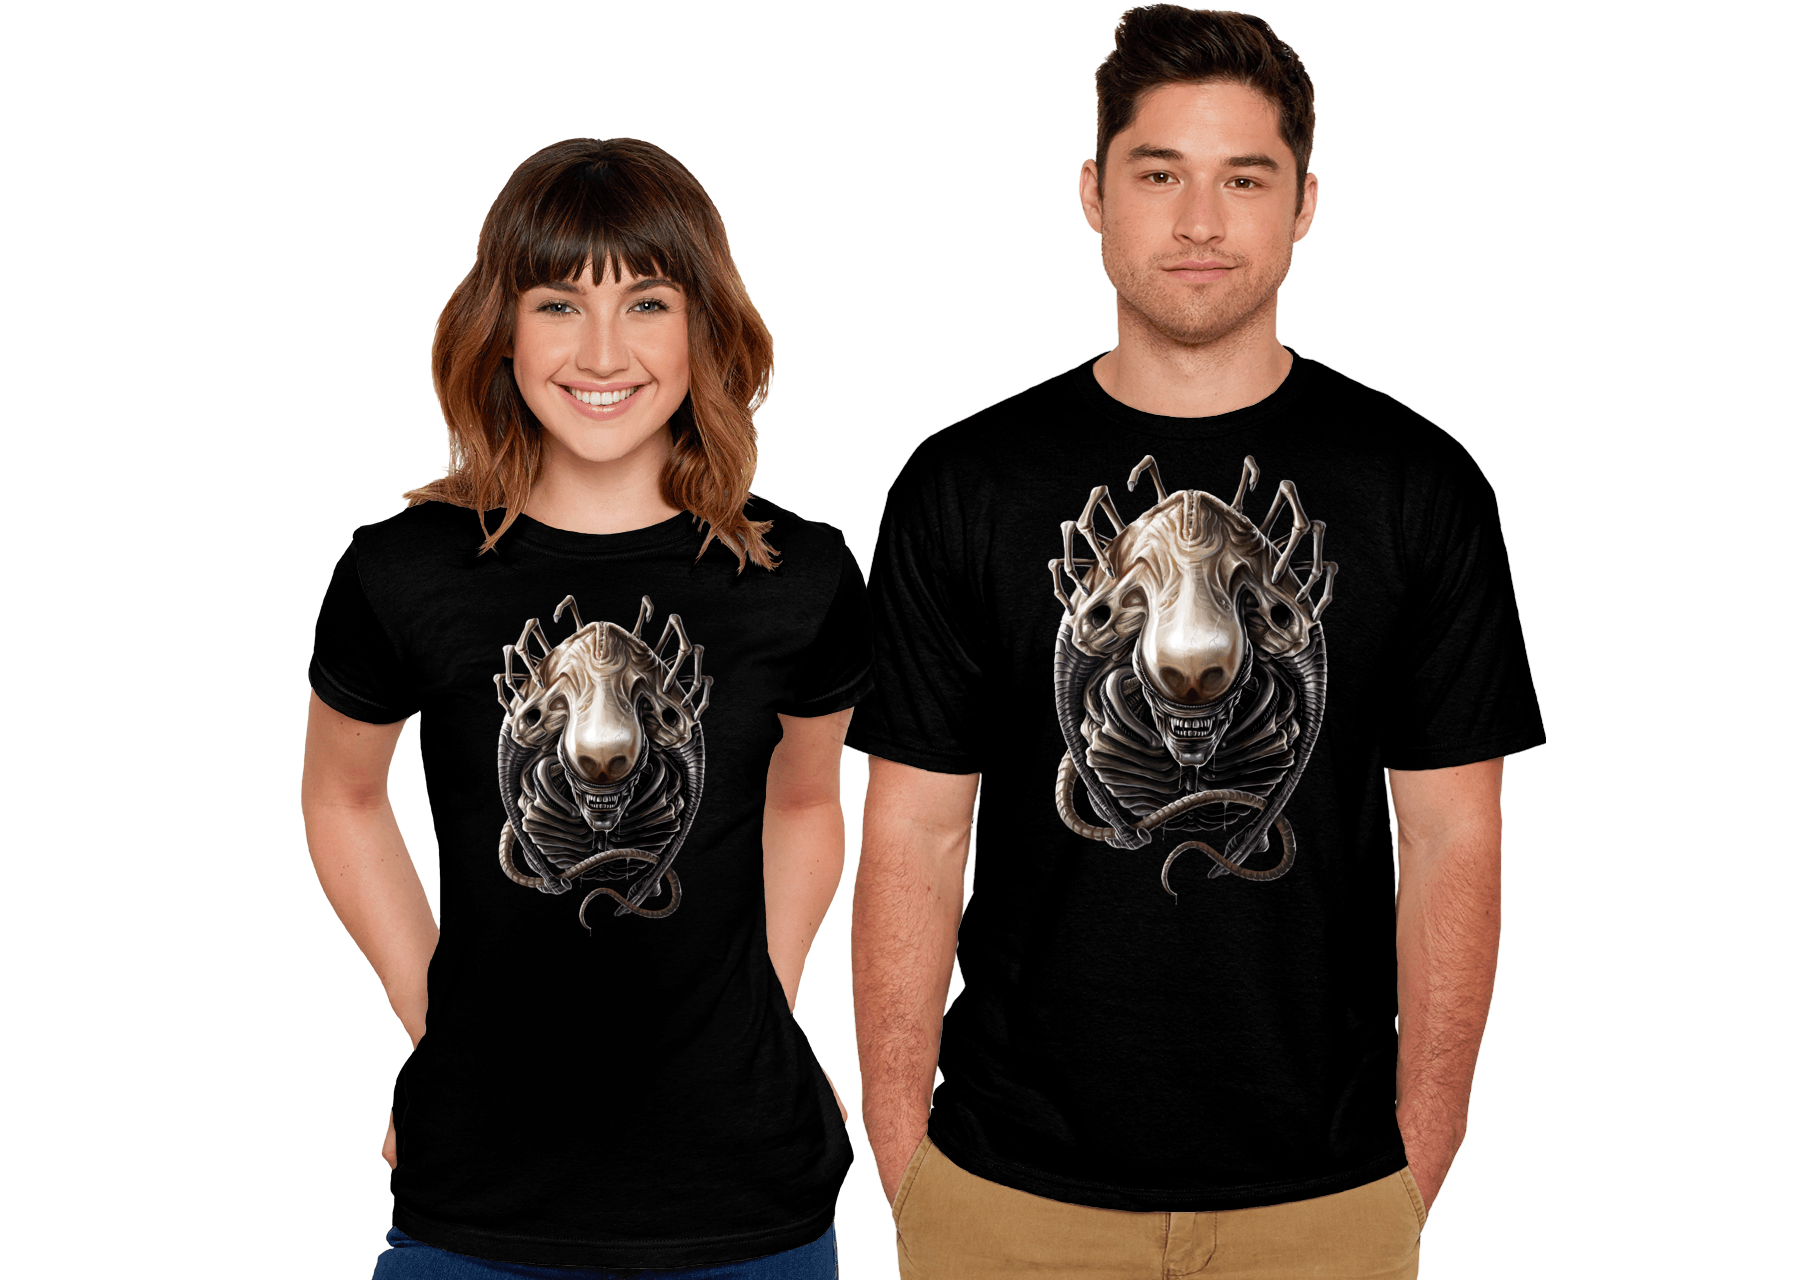 91dac11c The Daily Exclusive | TeeFury